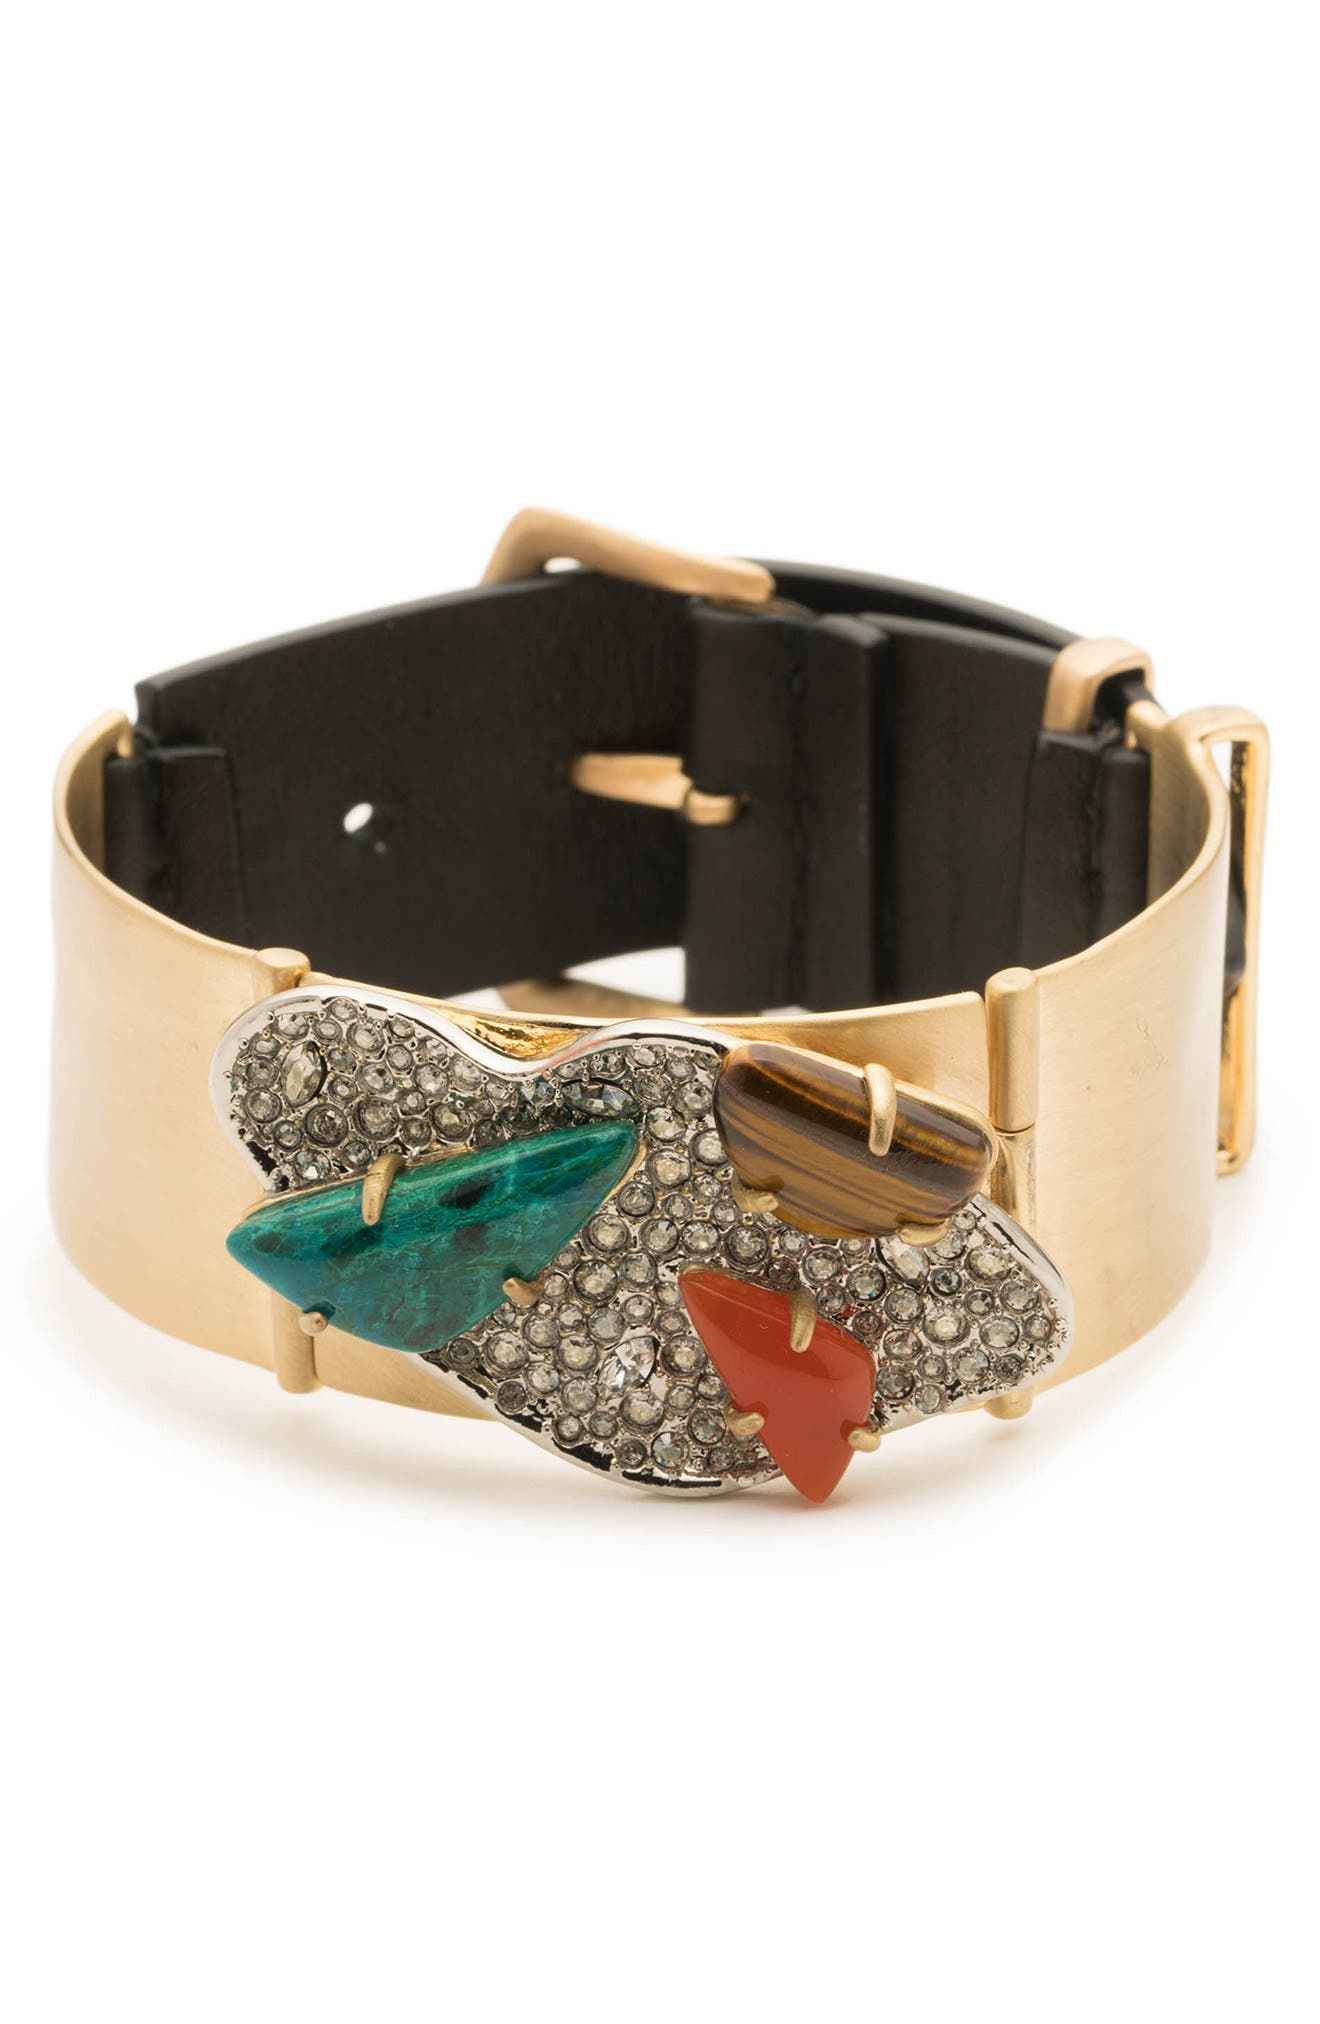 Crystal Encrusted Leather Strap Bracelet,                             Main thumbnail 1, color,                             710